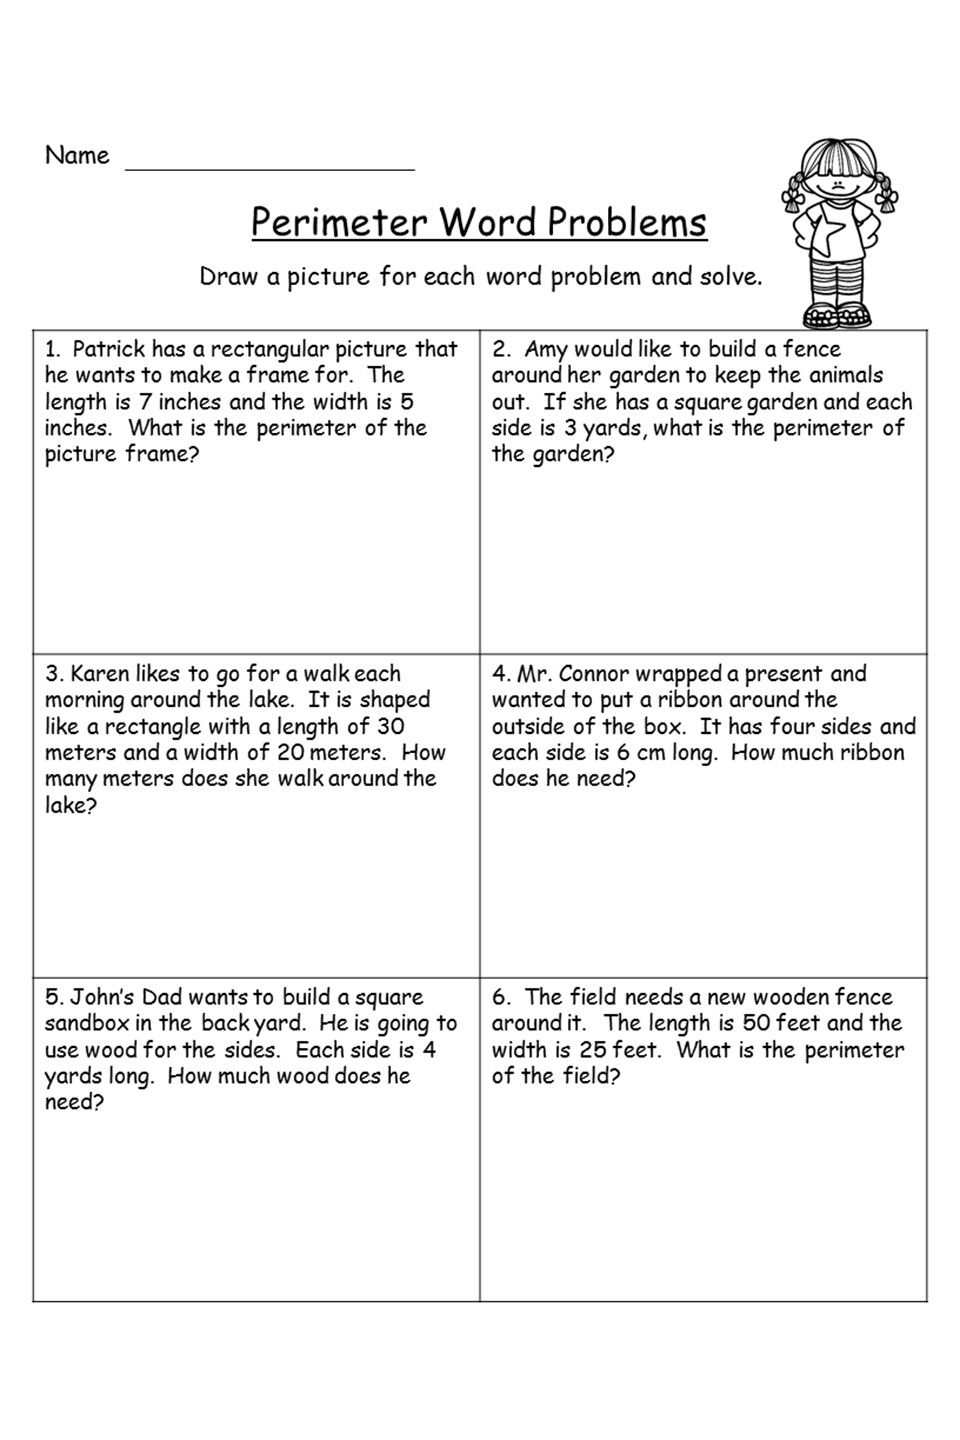 Perimeter Word Problems Word Problems Perimeter Worksheets Word Problems 3rd Grade